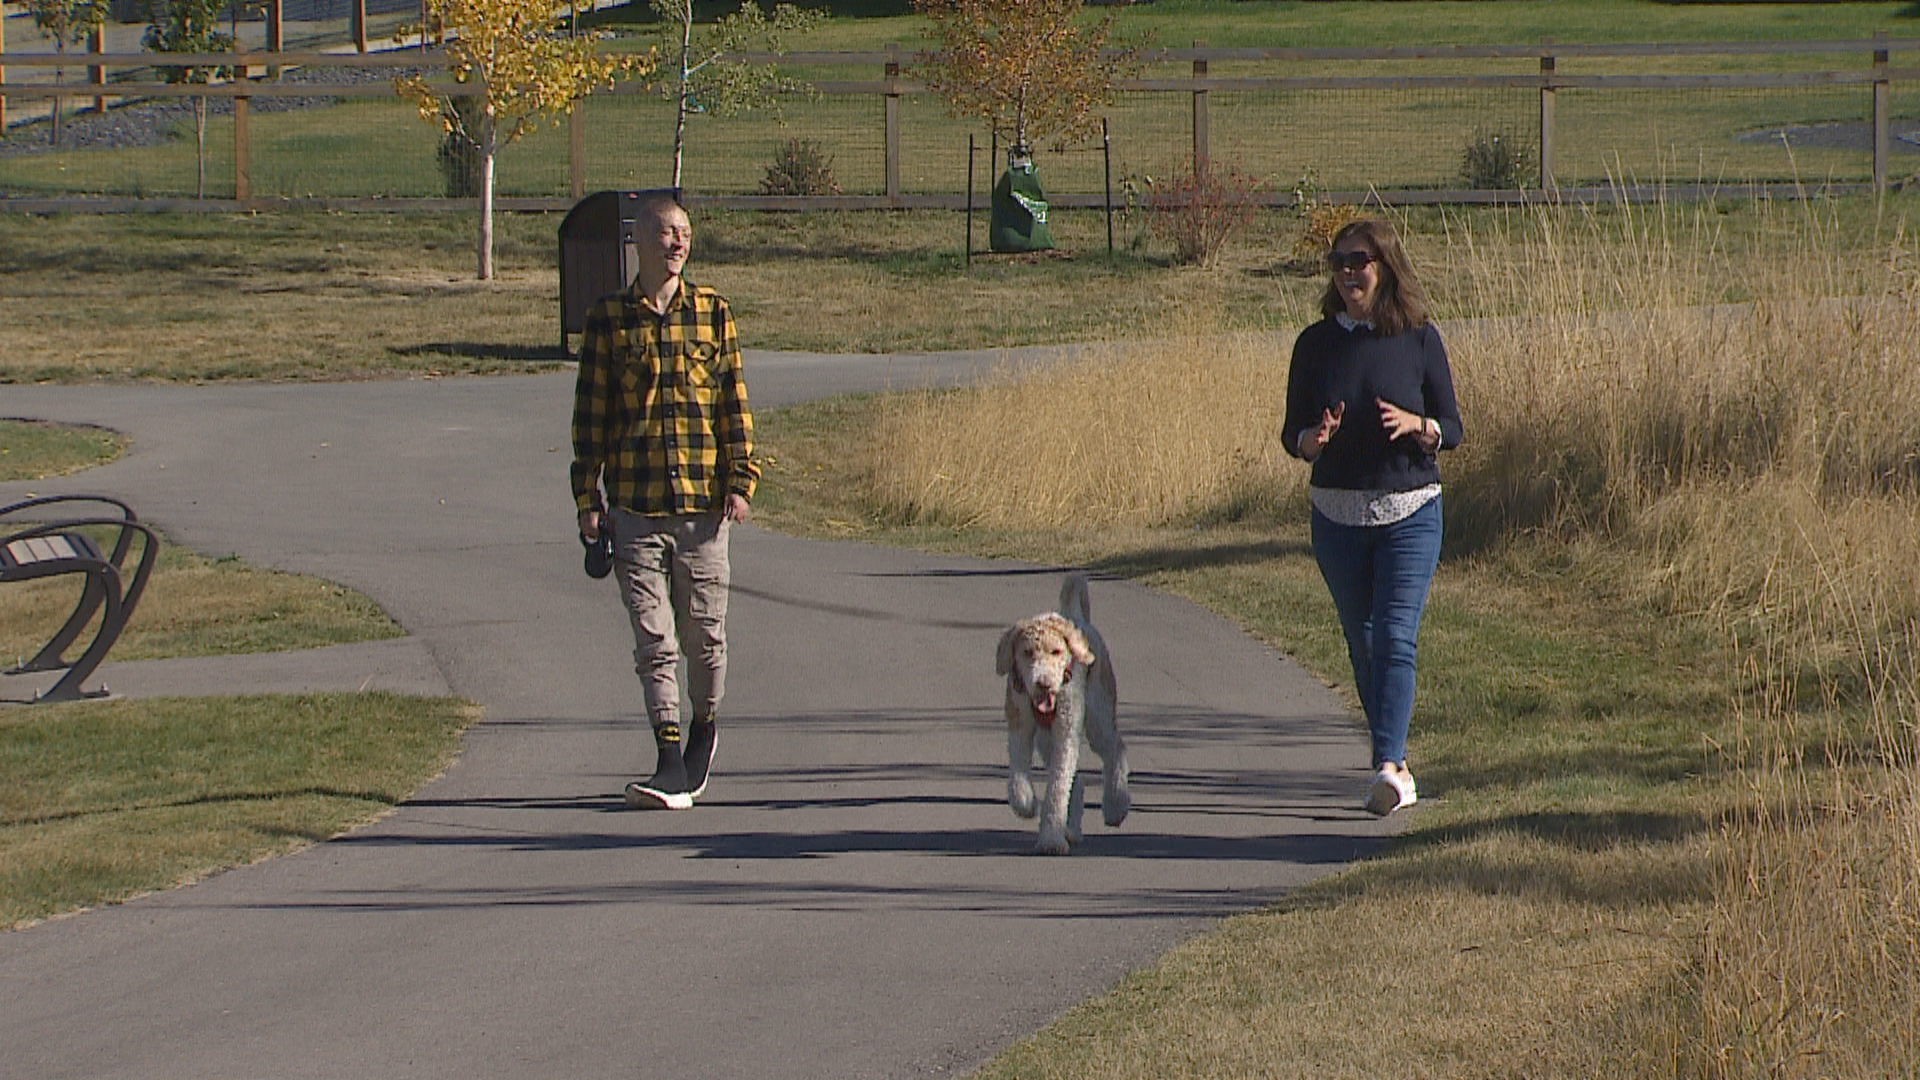 Kyle Hynes (left) walks with his dog, Simba, and his friend, Colette Williams (right), on a trail near his home in Springbank, Alta. (Justin Pennell/CBC)